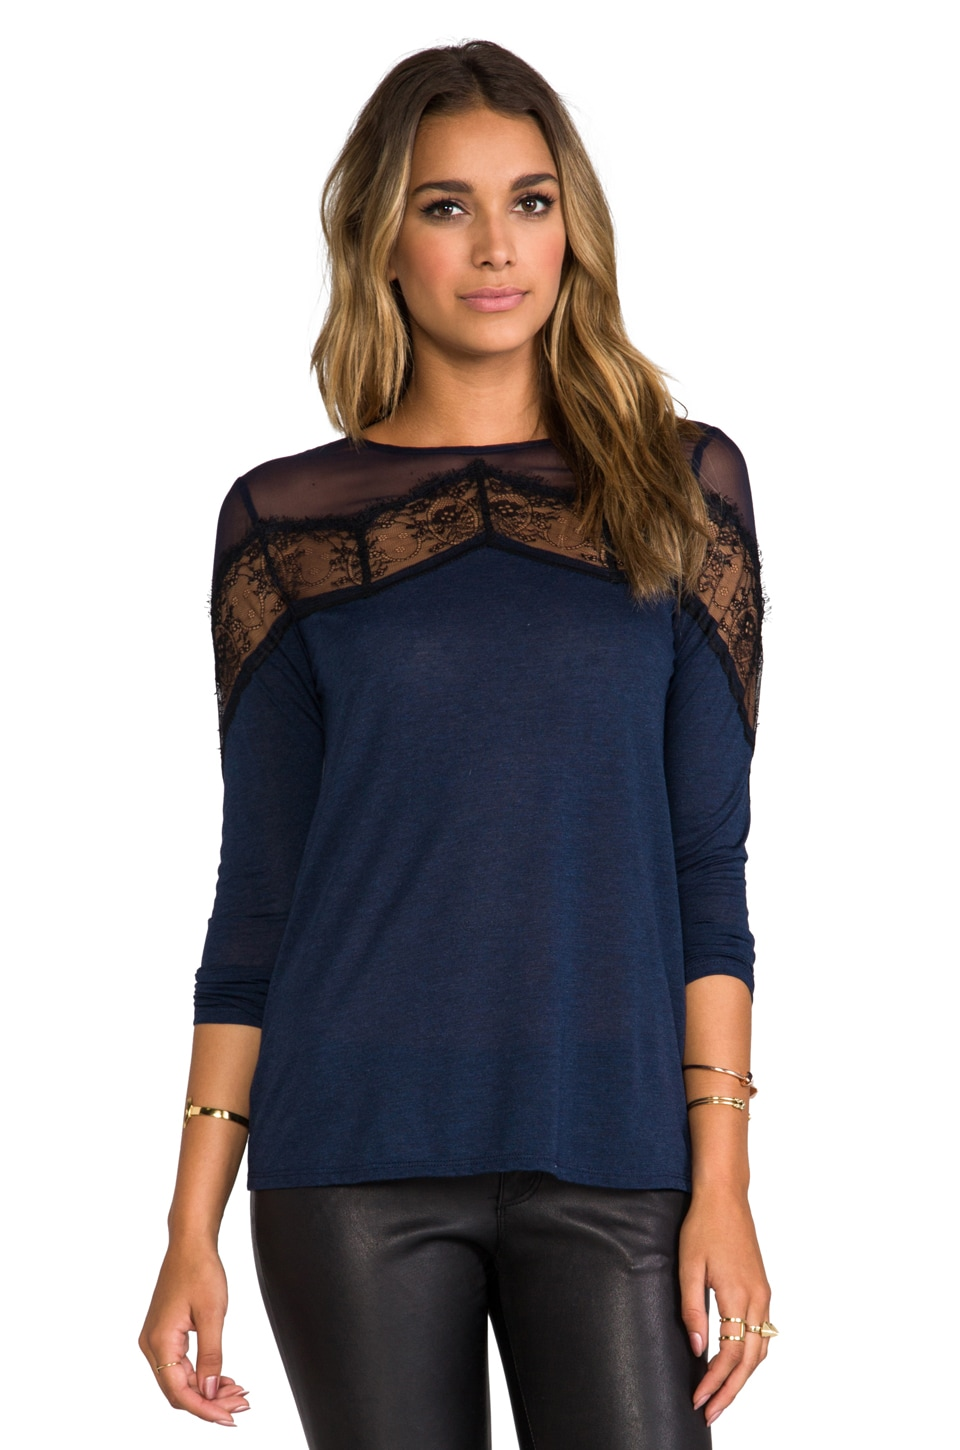 Heather Chevron Lace Top in Heather Midnight